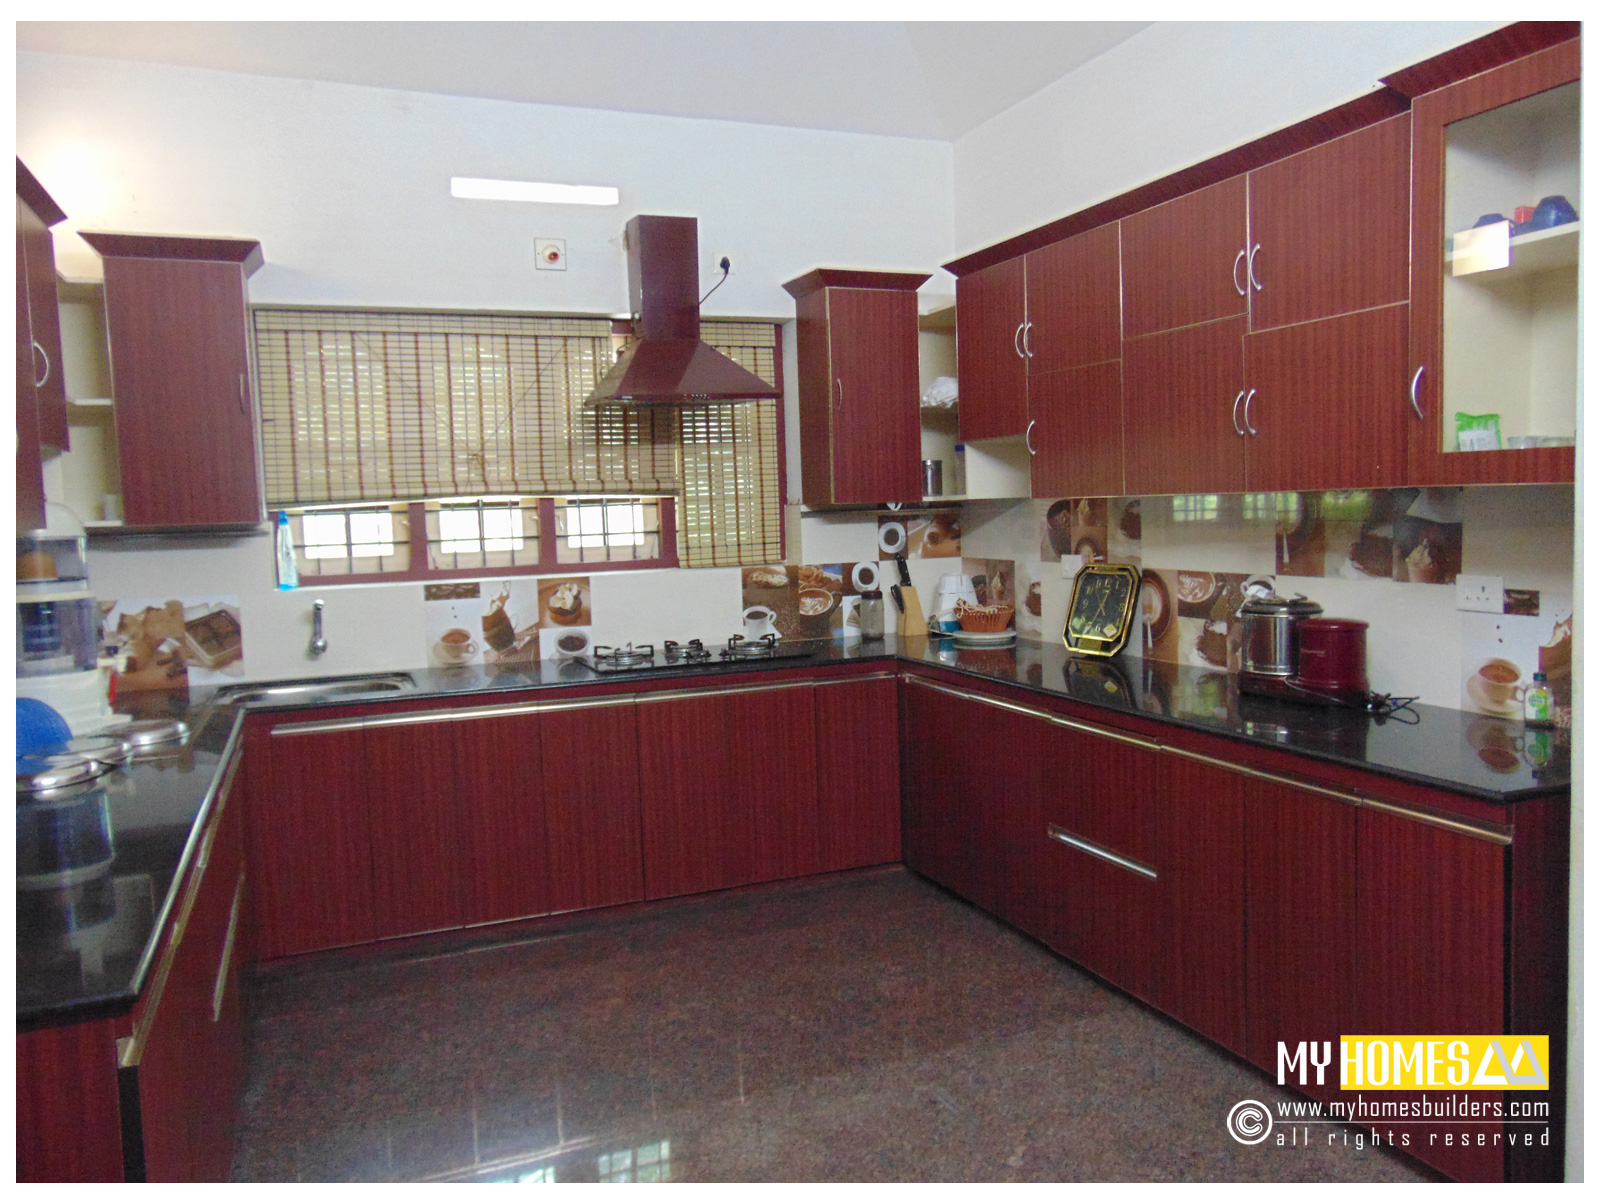 Budget house kerala home designers builder in thrissur india for Home kitchen design pictures